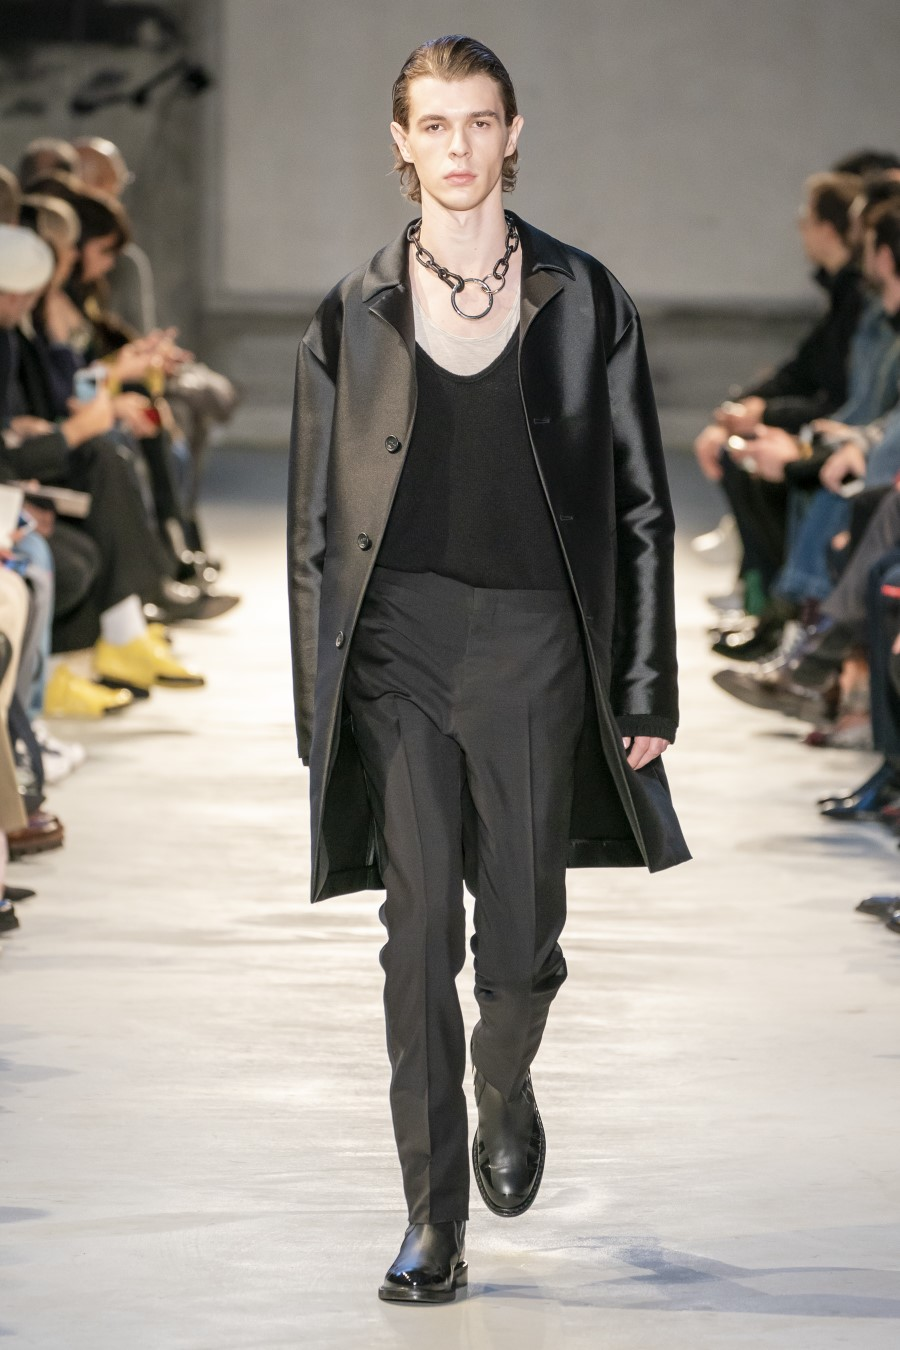 N°21 Men's Fall Winter 2019 – Milano Moda Uomo